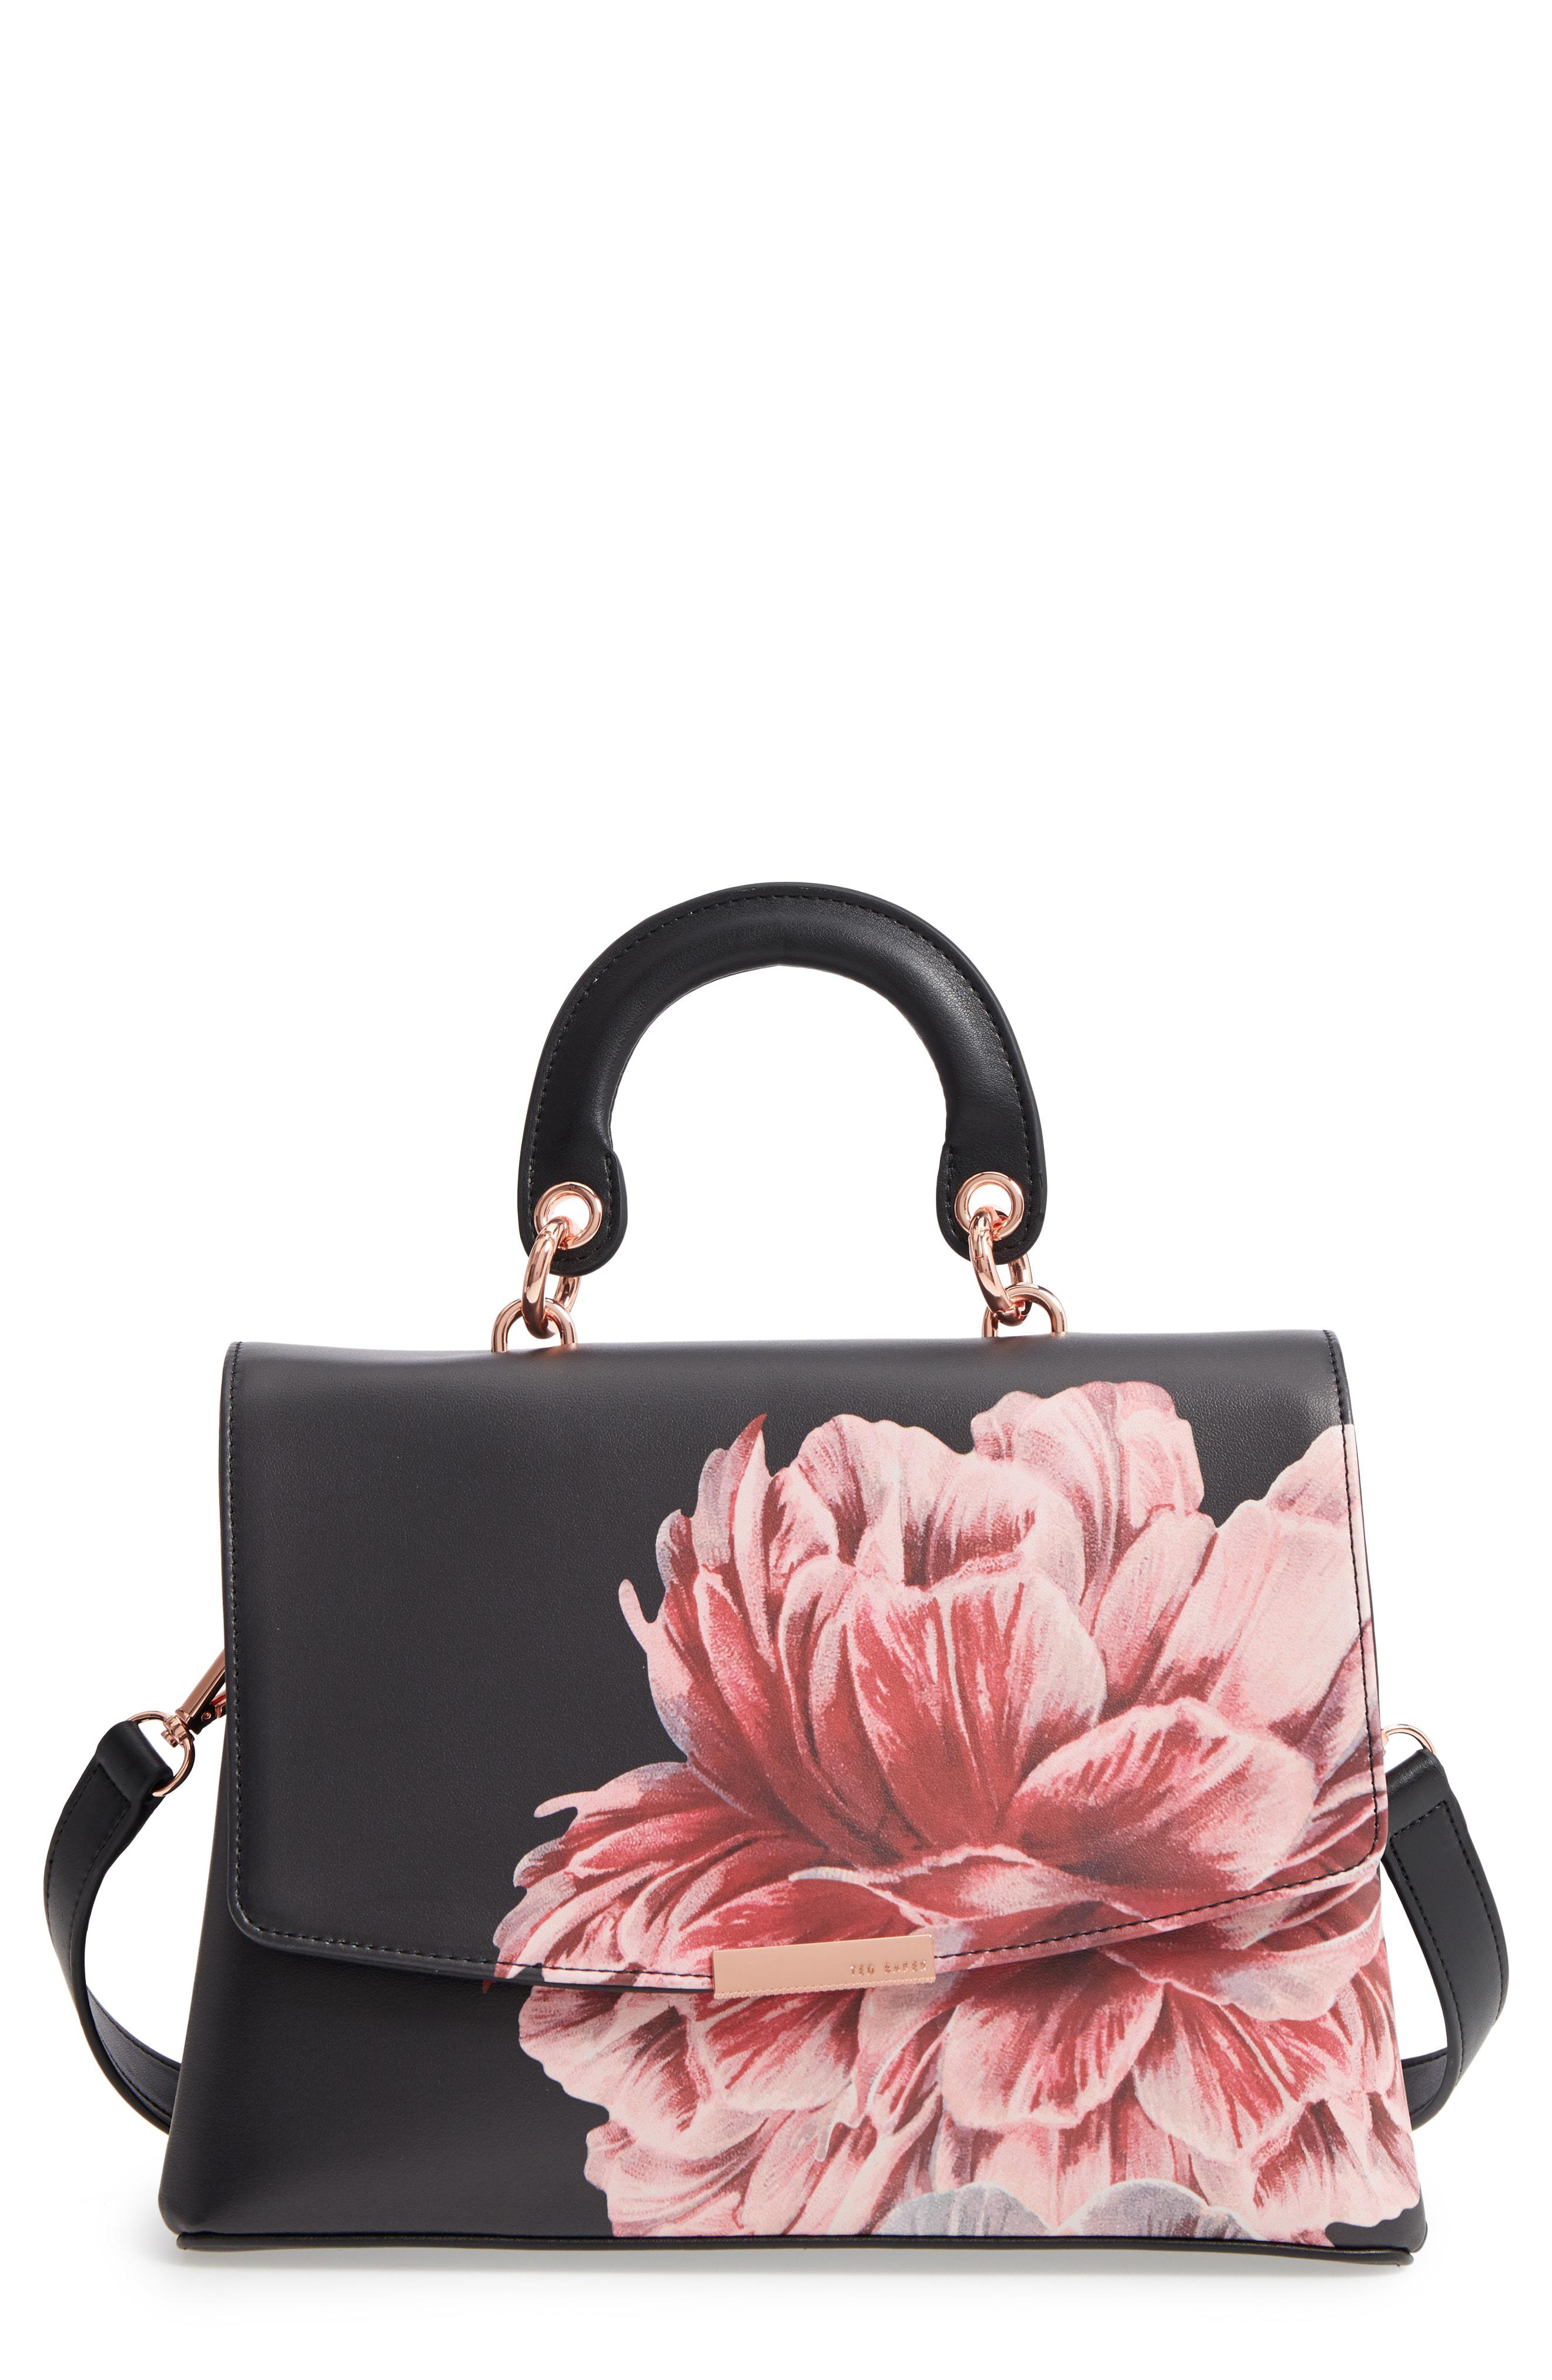 891c04604a Ted Baker Tranquility Lady Bag Top Handle Satchel - - Lyst